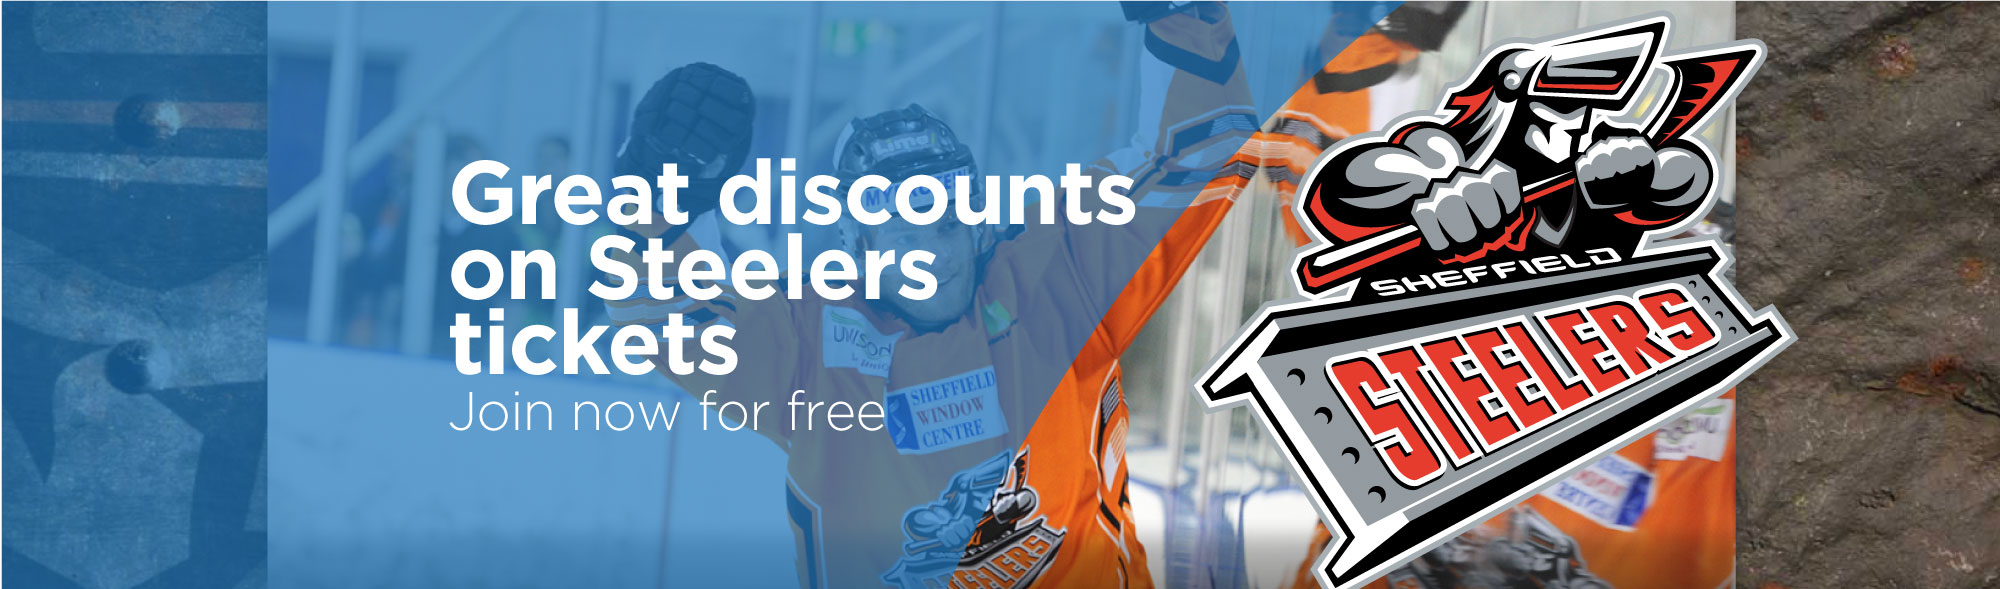 Sheffield Steelers discount tickets